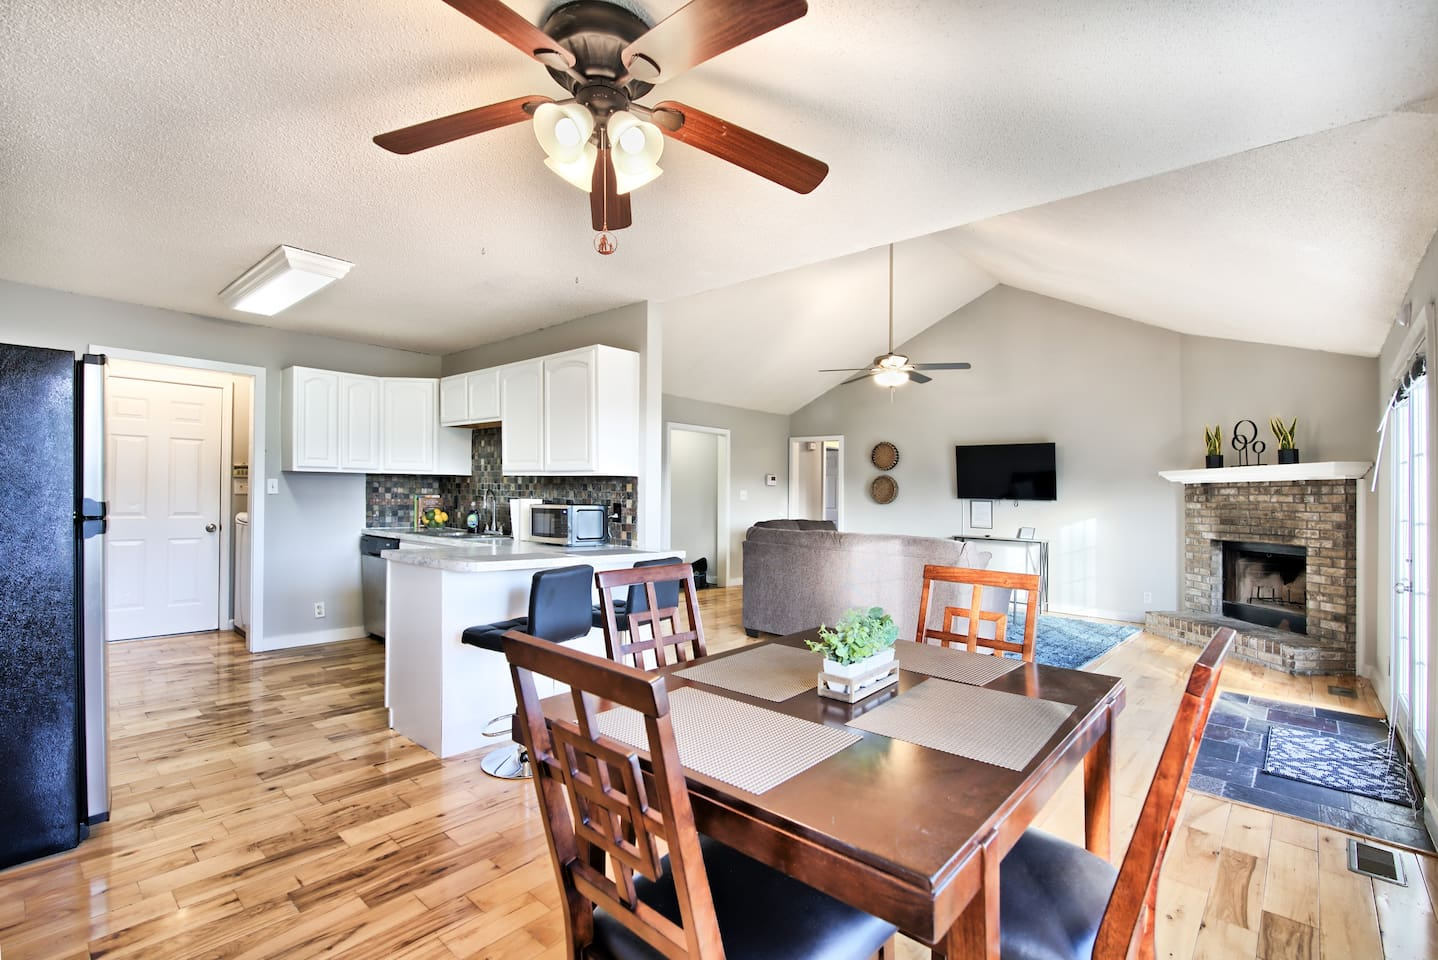 Check out this open layout! Cook, eat, watch tv, and entertain your family and friends!